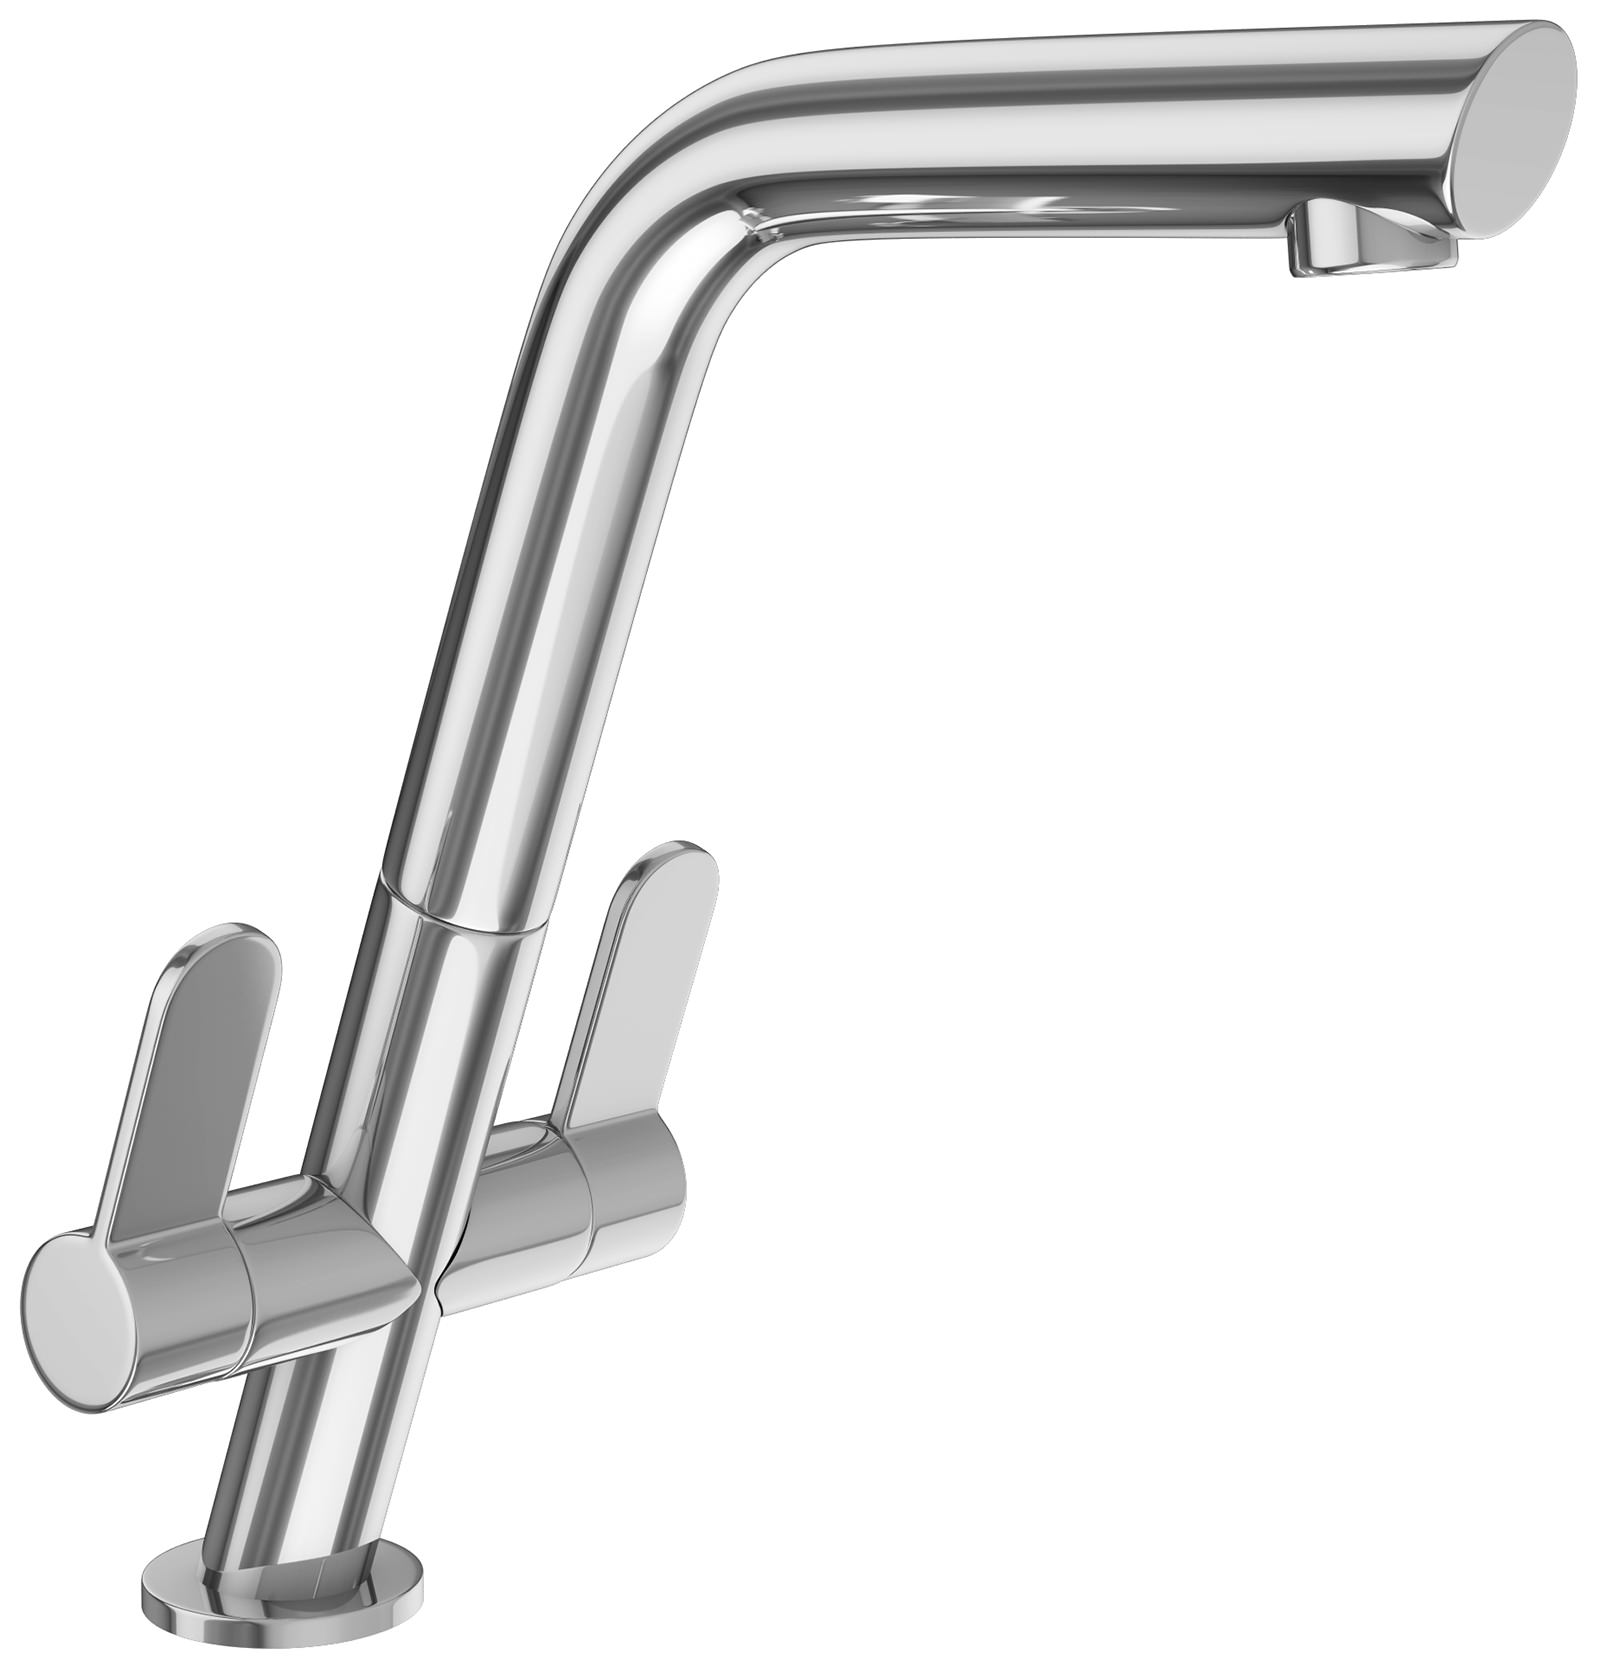 Franke Cresta Kitchen Sink Mixer Tap Chrome 1150250642